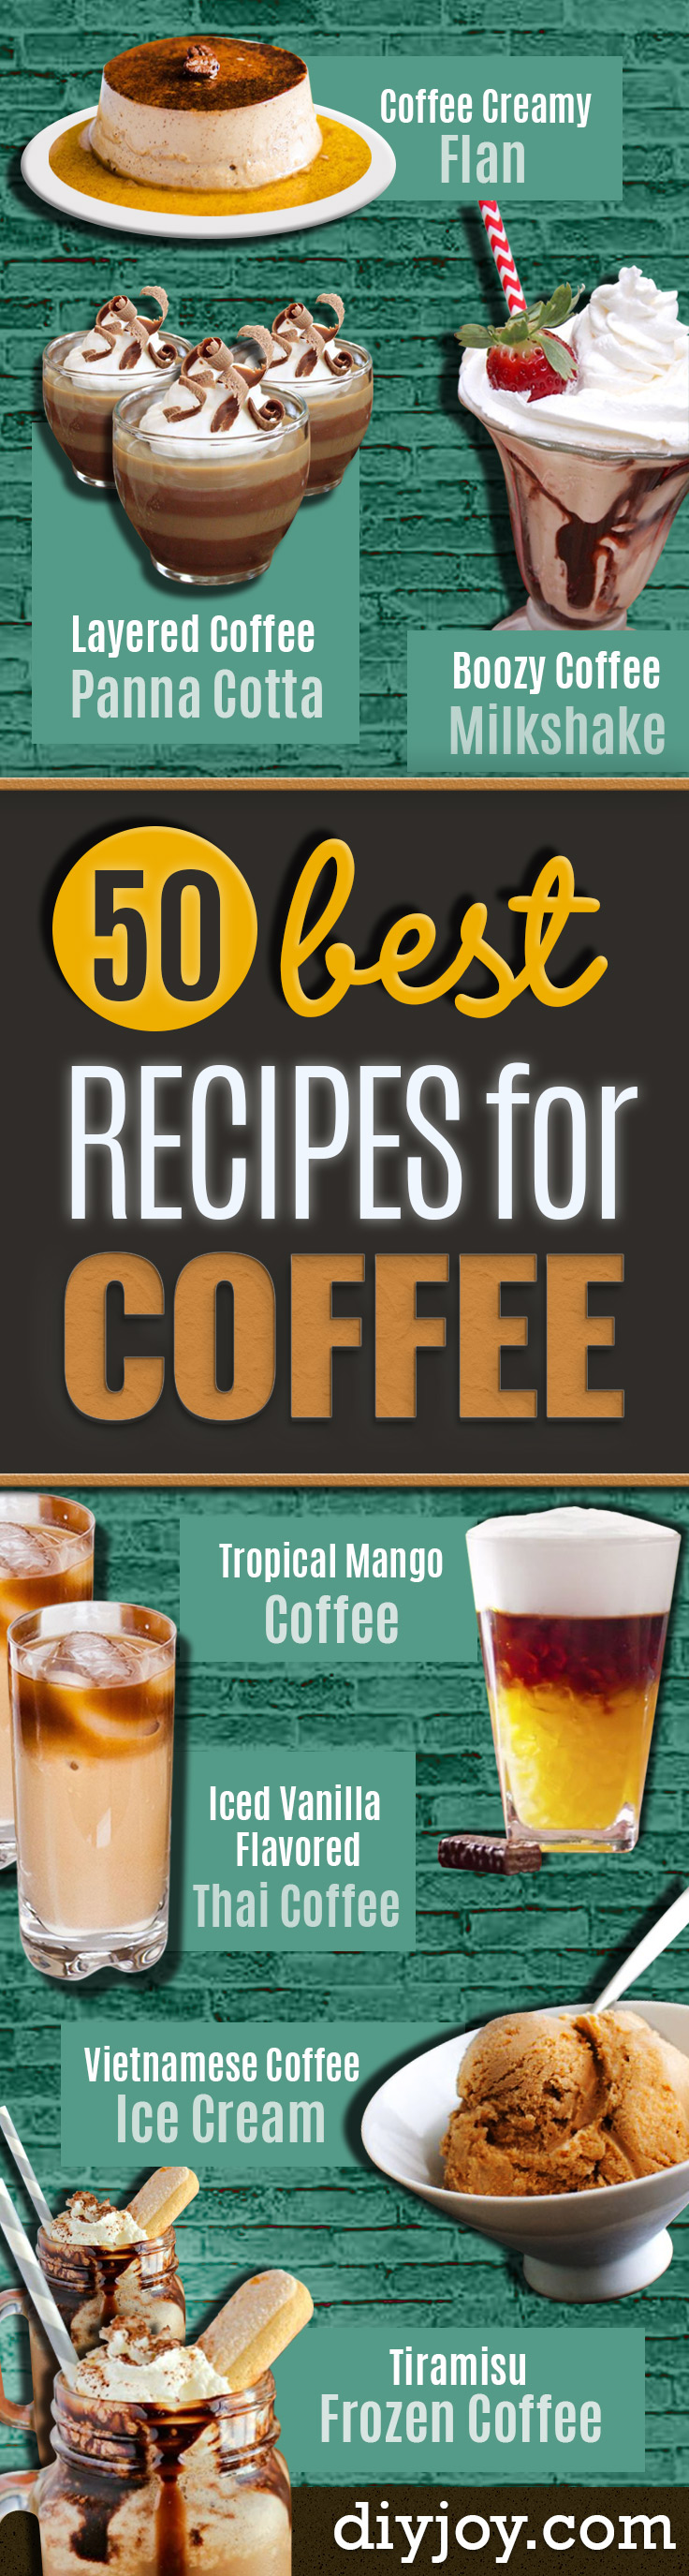 Coffee Drink Recipes - Easy Drinks and Coffees To Make At Home - Frozen, Iced, Cold Brew and Hot Coffee Recipe Ideas - Sugar Free, Low Fat and Blended Drinks - Mocha, Frappucino, Caramel, Chocolate, Latte and Americano - Flavored Coffee, Liqueur and After Dinner Drinks With Alcohol, Dessert Ideas for Parties